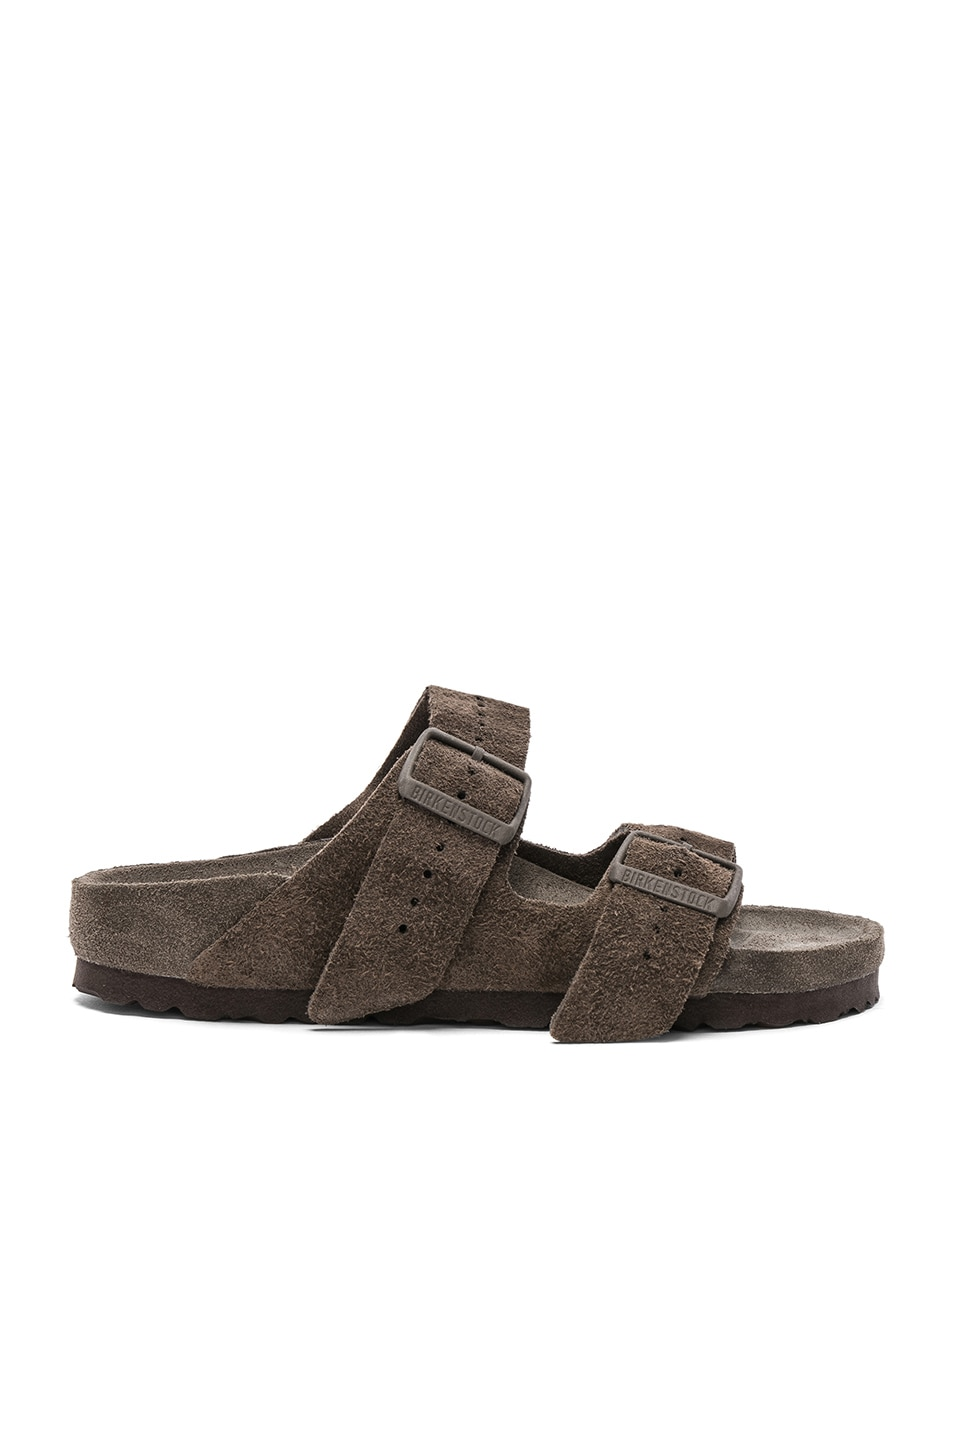 Image 1 of Rick Owens x Birkenstock Arizona Sandals in Dust